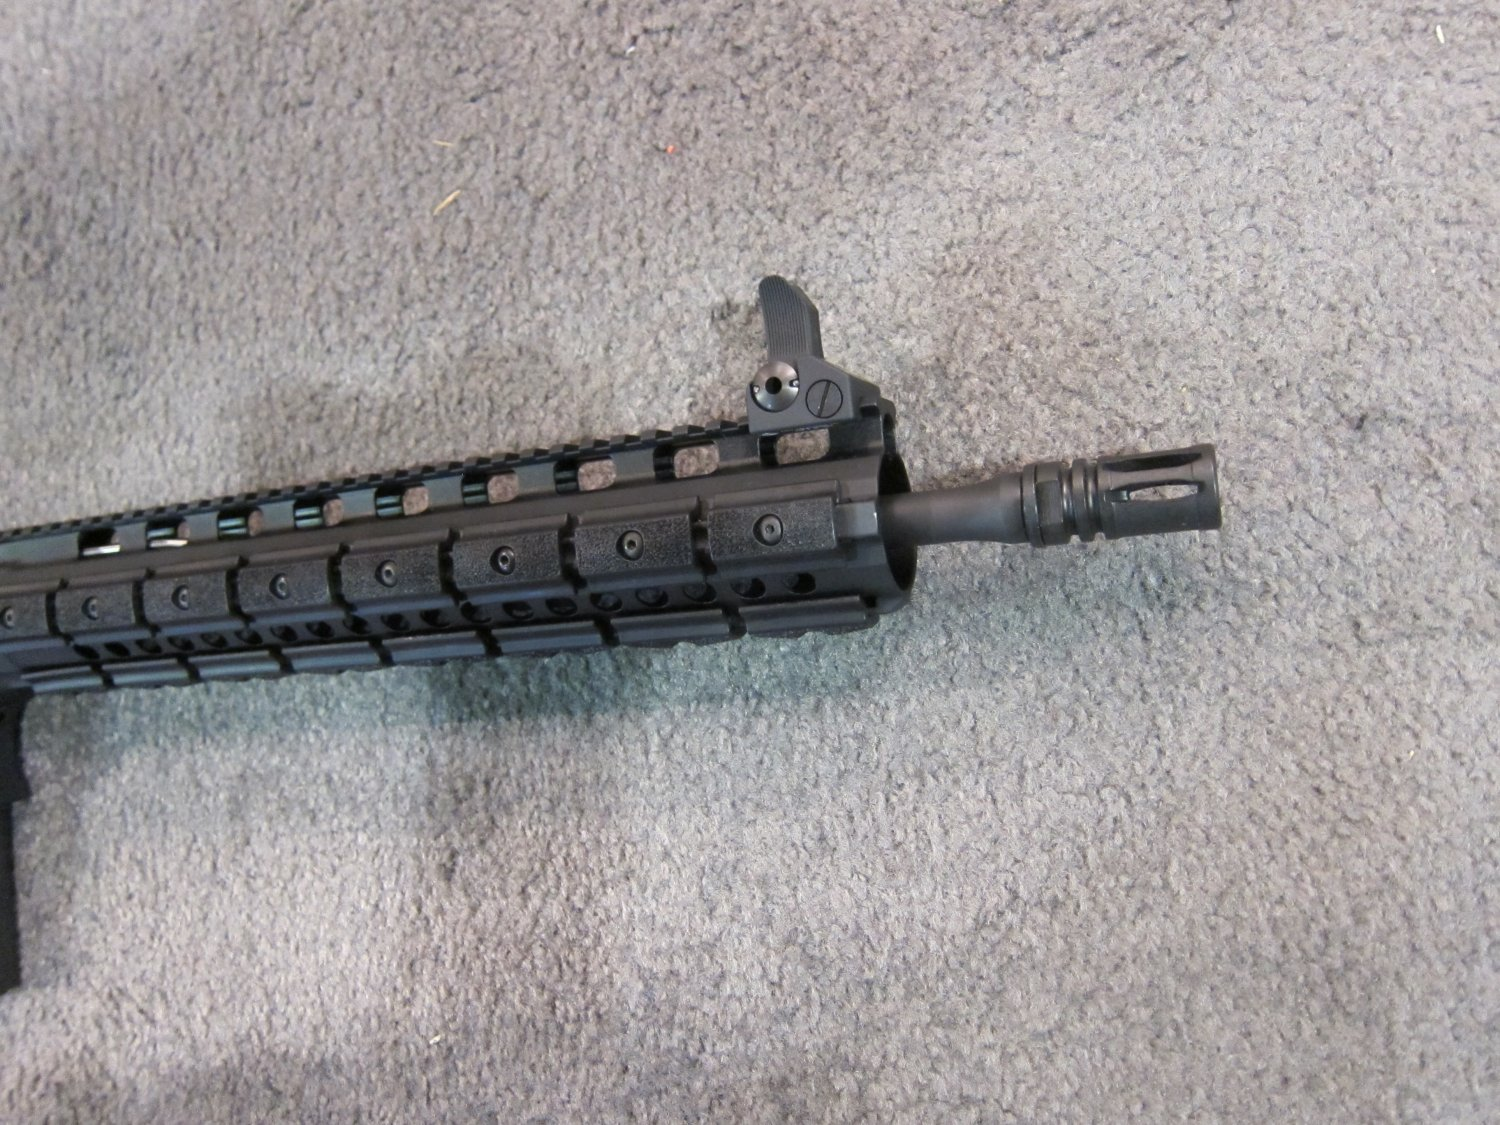 LaRue Tactical OBR 5.56 PREDATAR Series Tactical AR Carbine at SHOT Show 2011 5 <!  :en  >LaRue Tactical PredatAR Series Lightweight OBR 5.56 and OBR 7.62 Tactical AR Carbines Debut at SHOT Show 2011 (Video!)<!  :  >